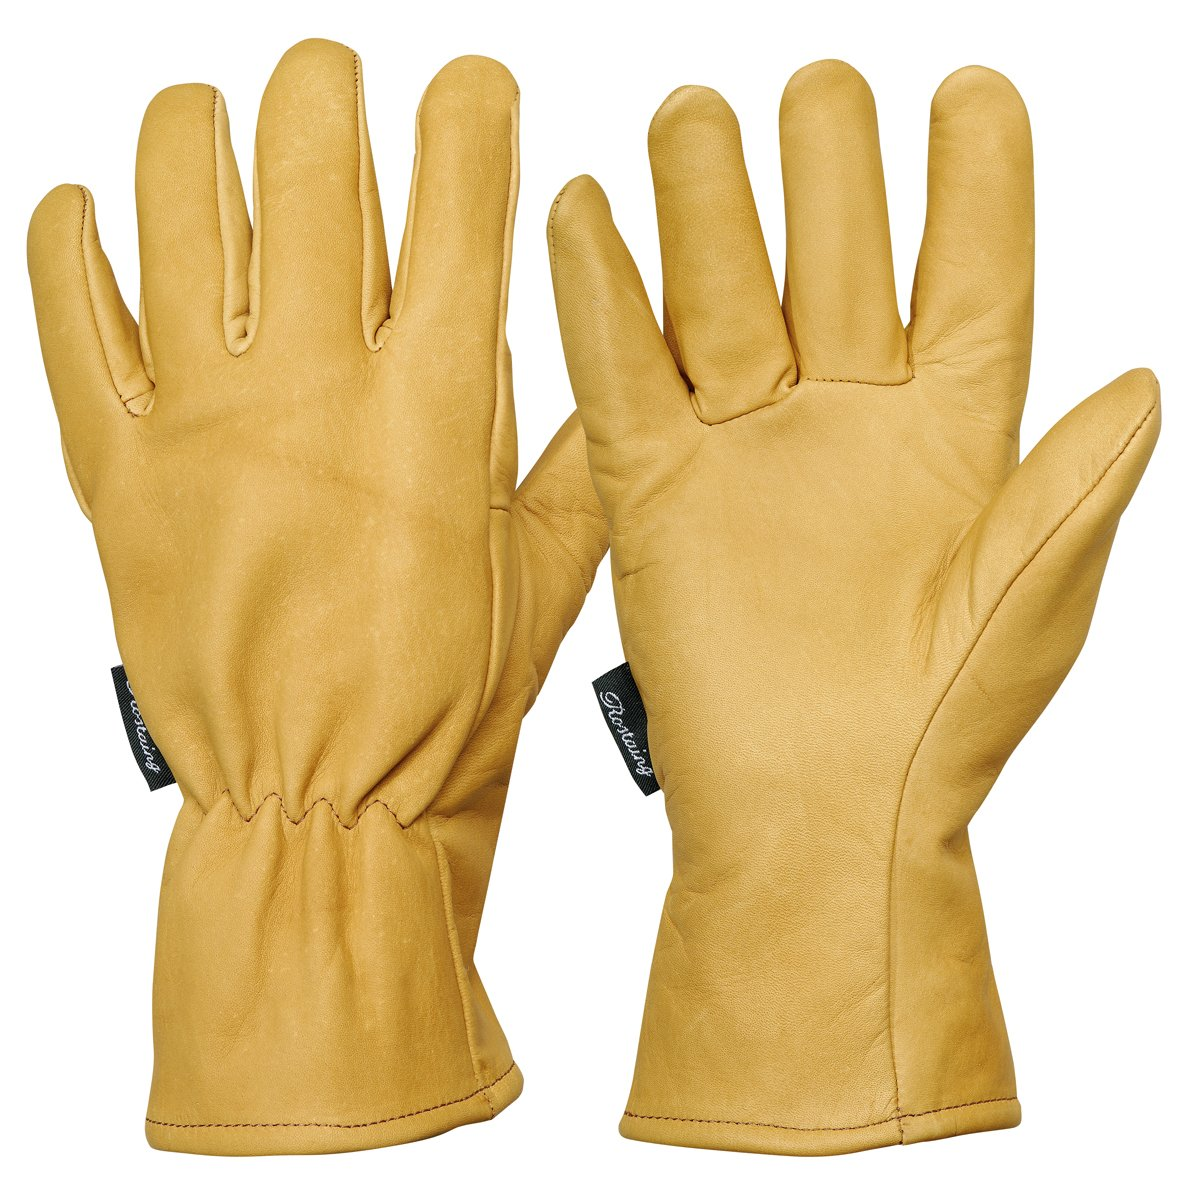 Rostaing GHIVER/IT11 Gants Polaire Cuir Hydrofuge, Doublé Polaire T 11, Beige, 36 x 15 x 4 cm Doublé Polaire T 11